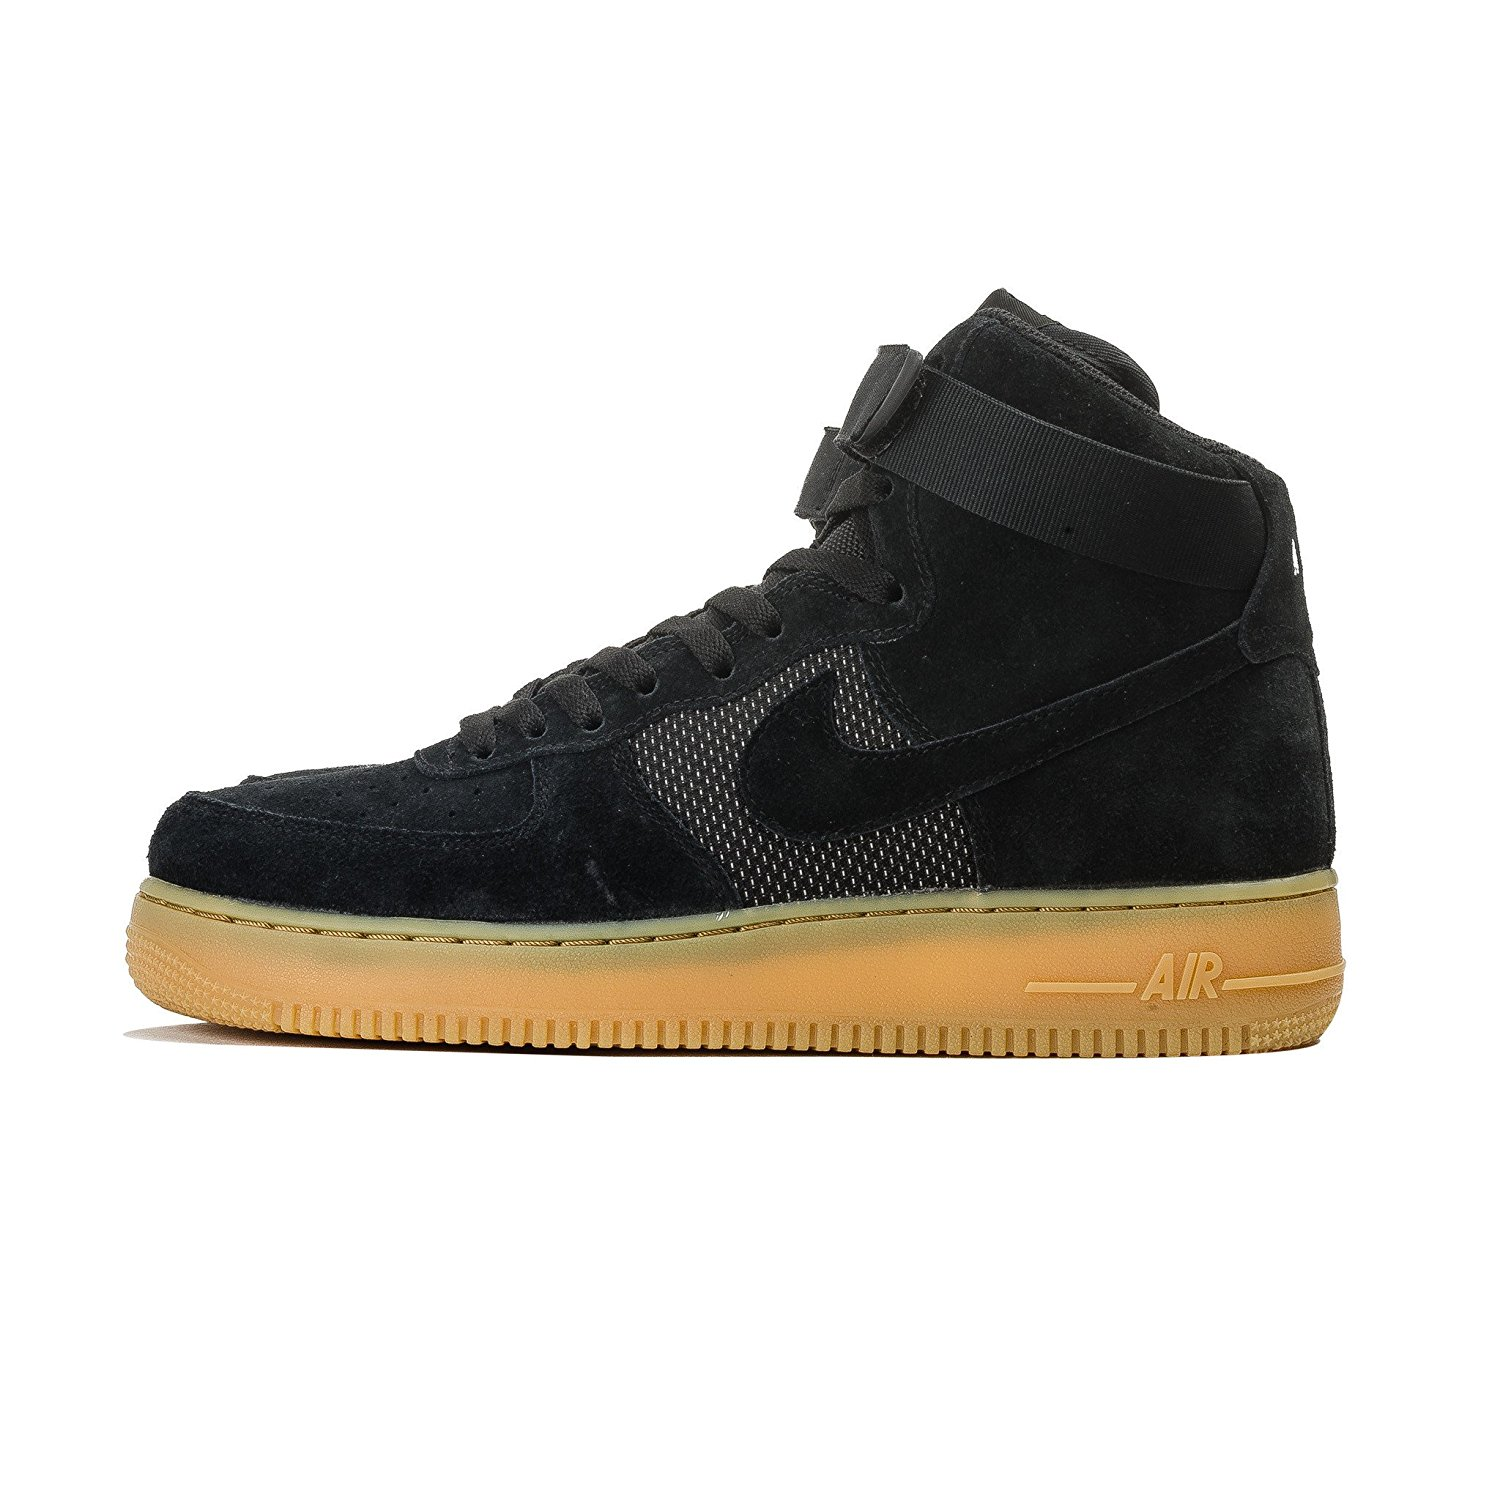 Nike Air Force 1 High 07 LV8 Mens Black/Gum Light Brown/White/Black 806403-003